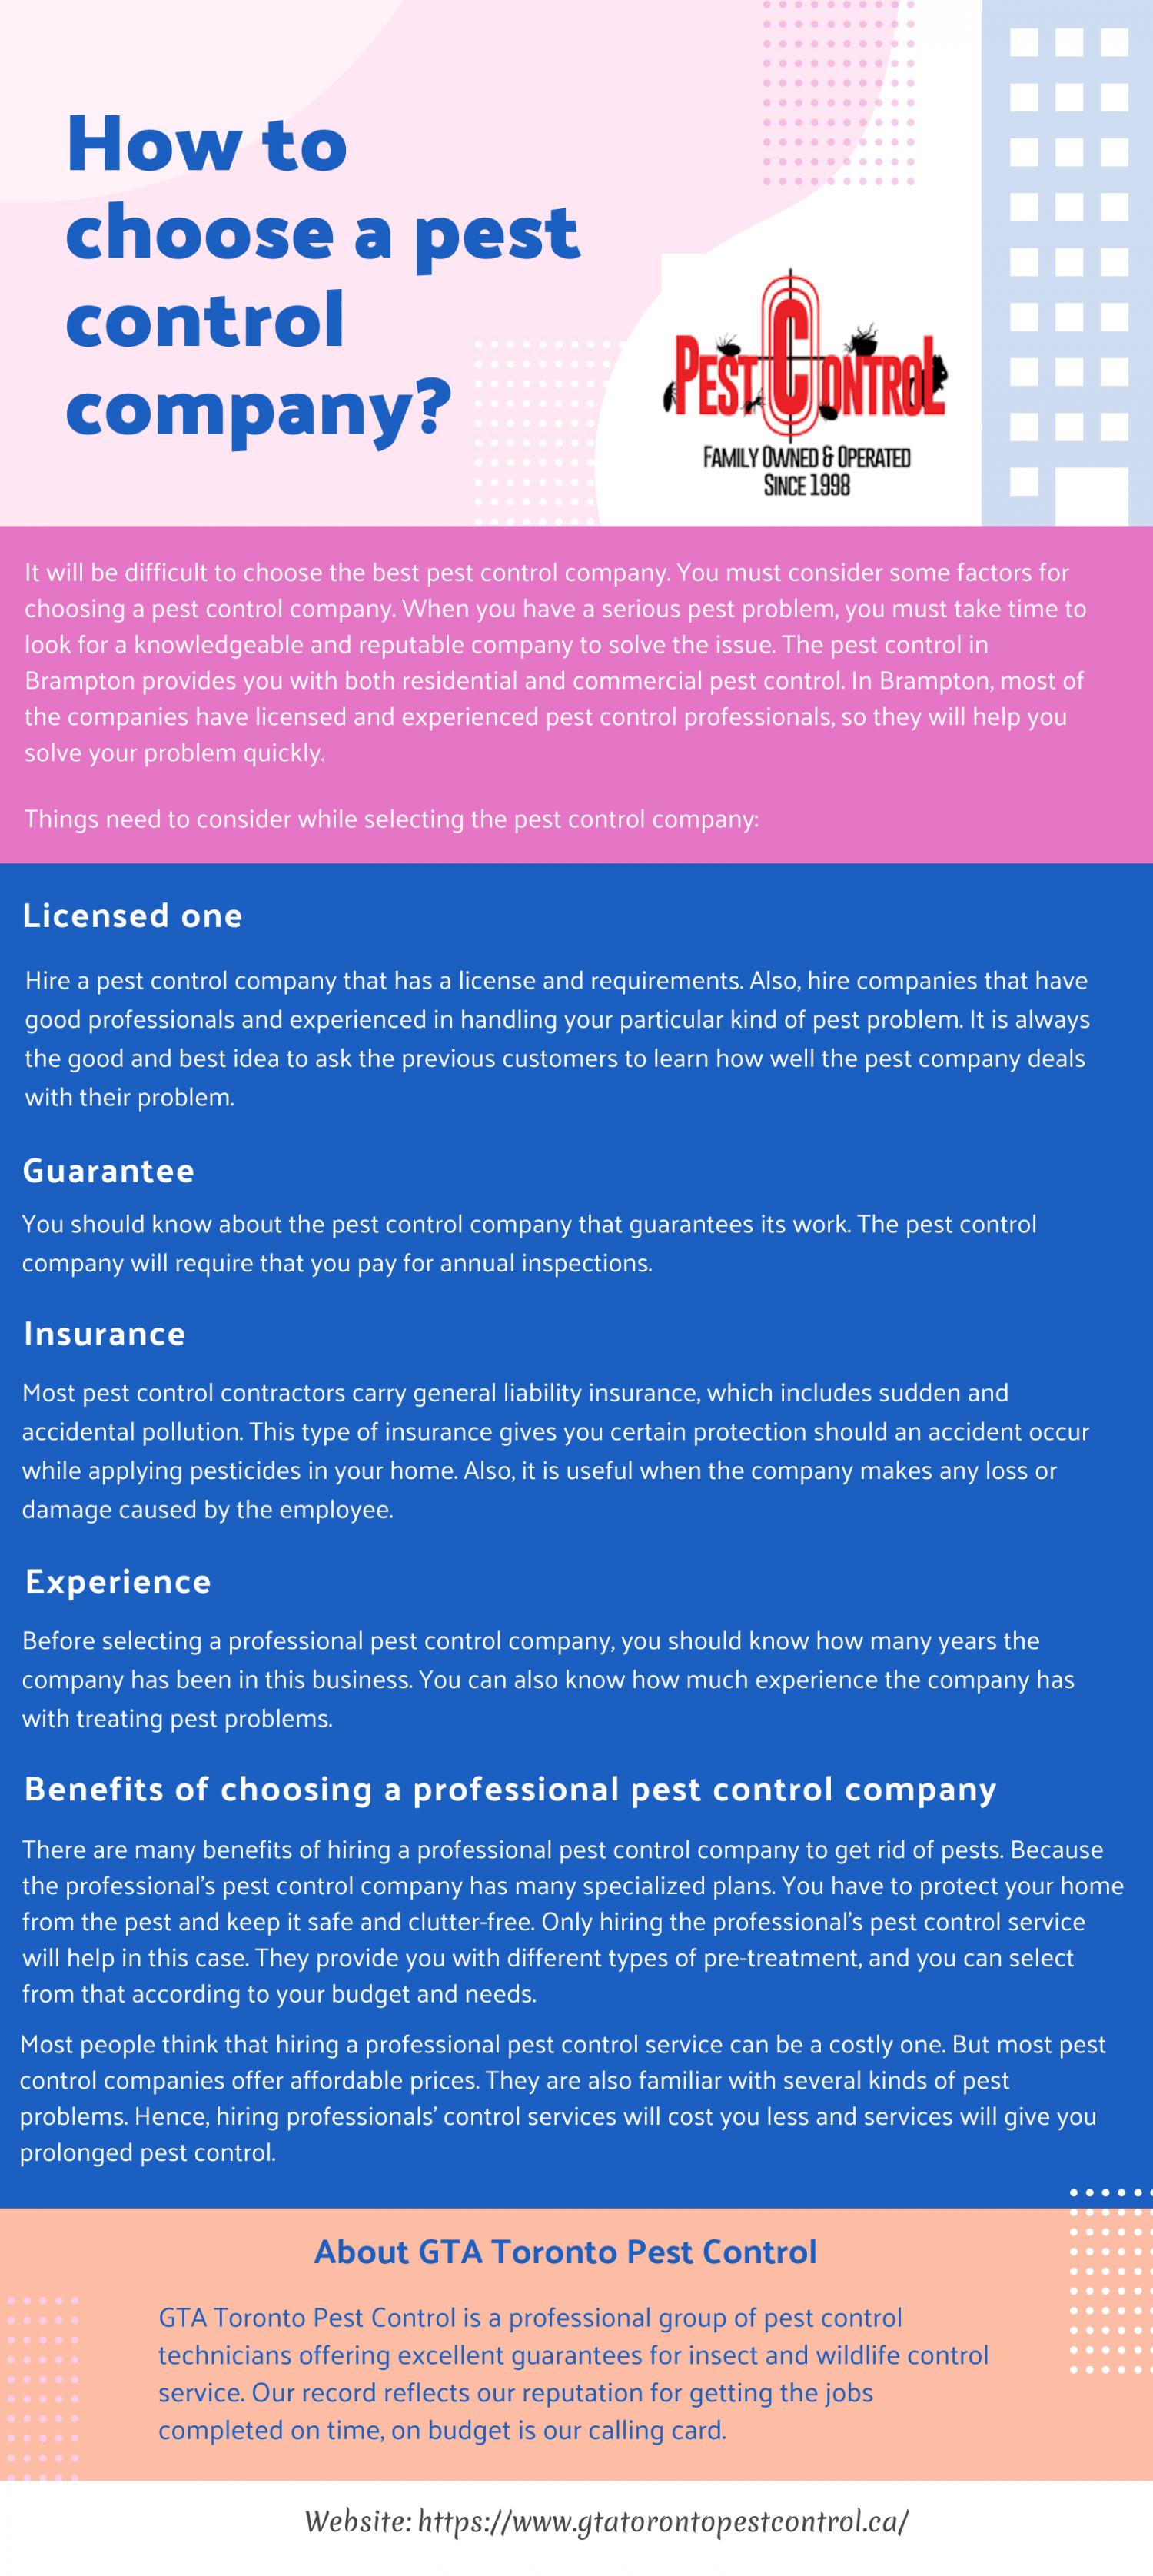 How to choose a pest control company? Infographic